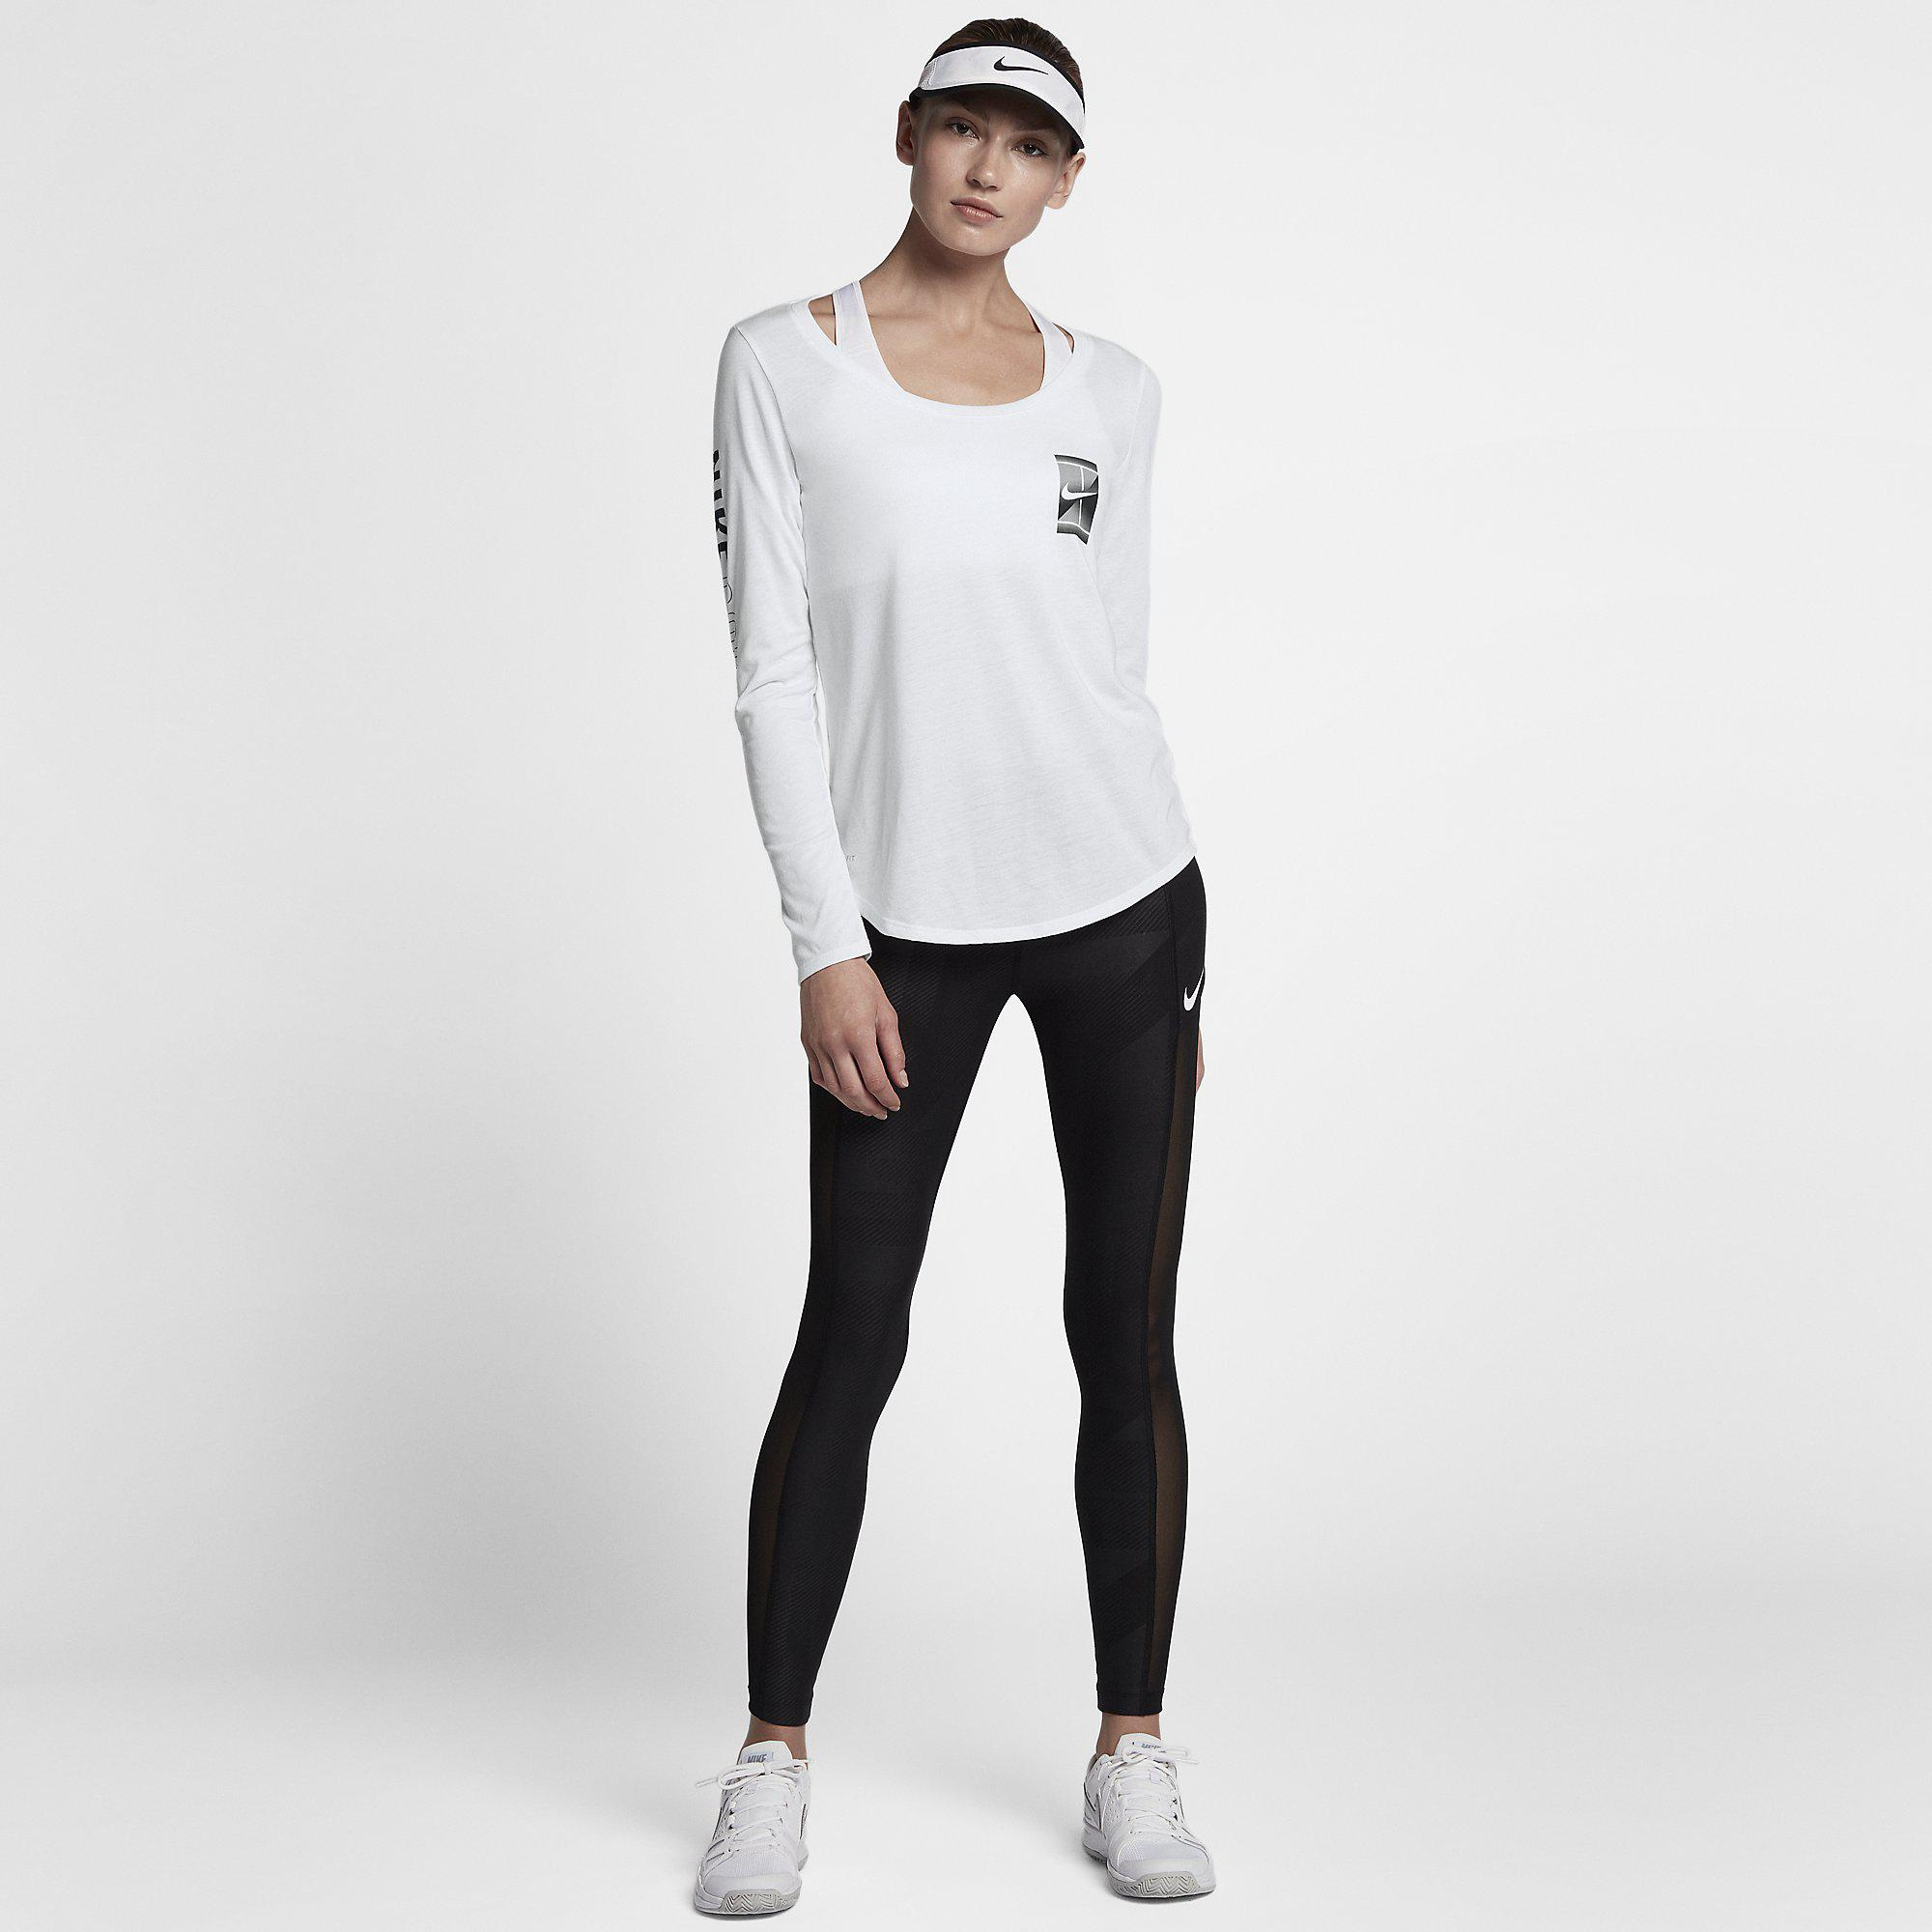 7faf4a8a9d51 Nike Womens Court Dry Long-Sleeve Tennis Top - White - Tennisnuts.com